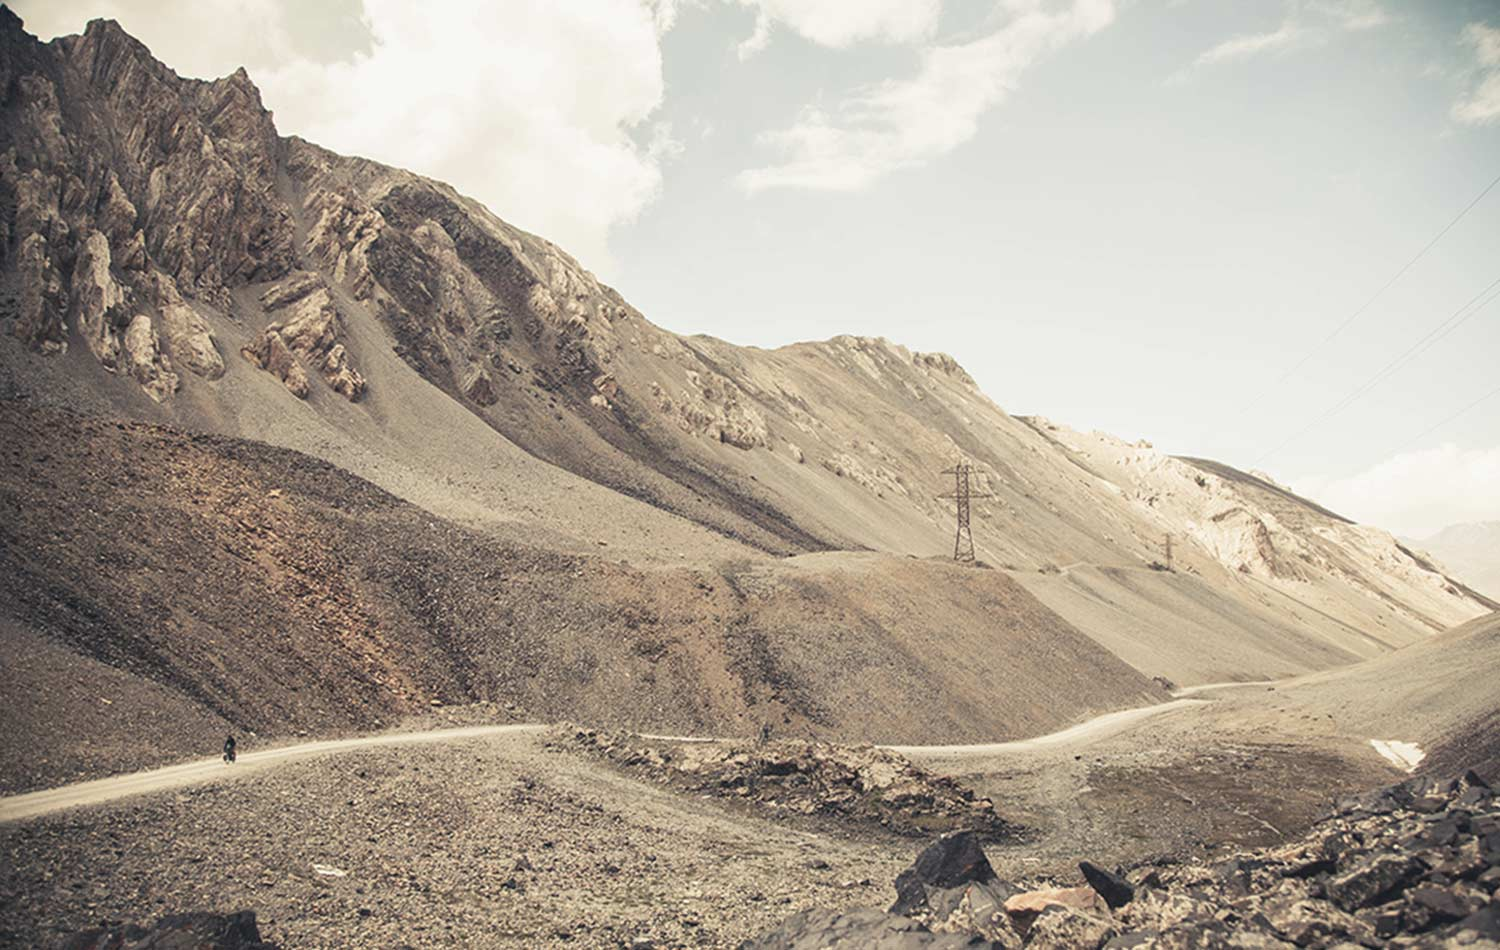 Kyrgyzstan Landscape. Apidura Ambassador's Marc Maurer on his journey Bikepacking in Kyrgyzstan.